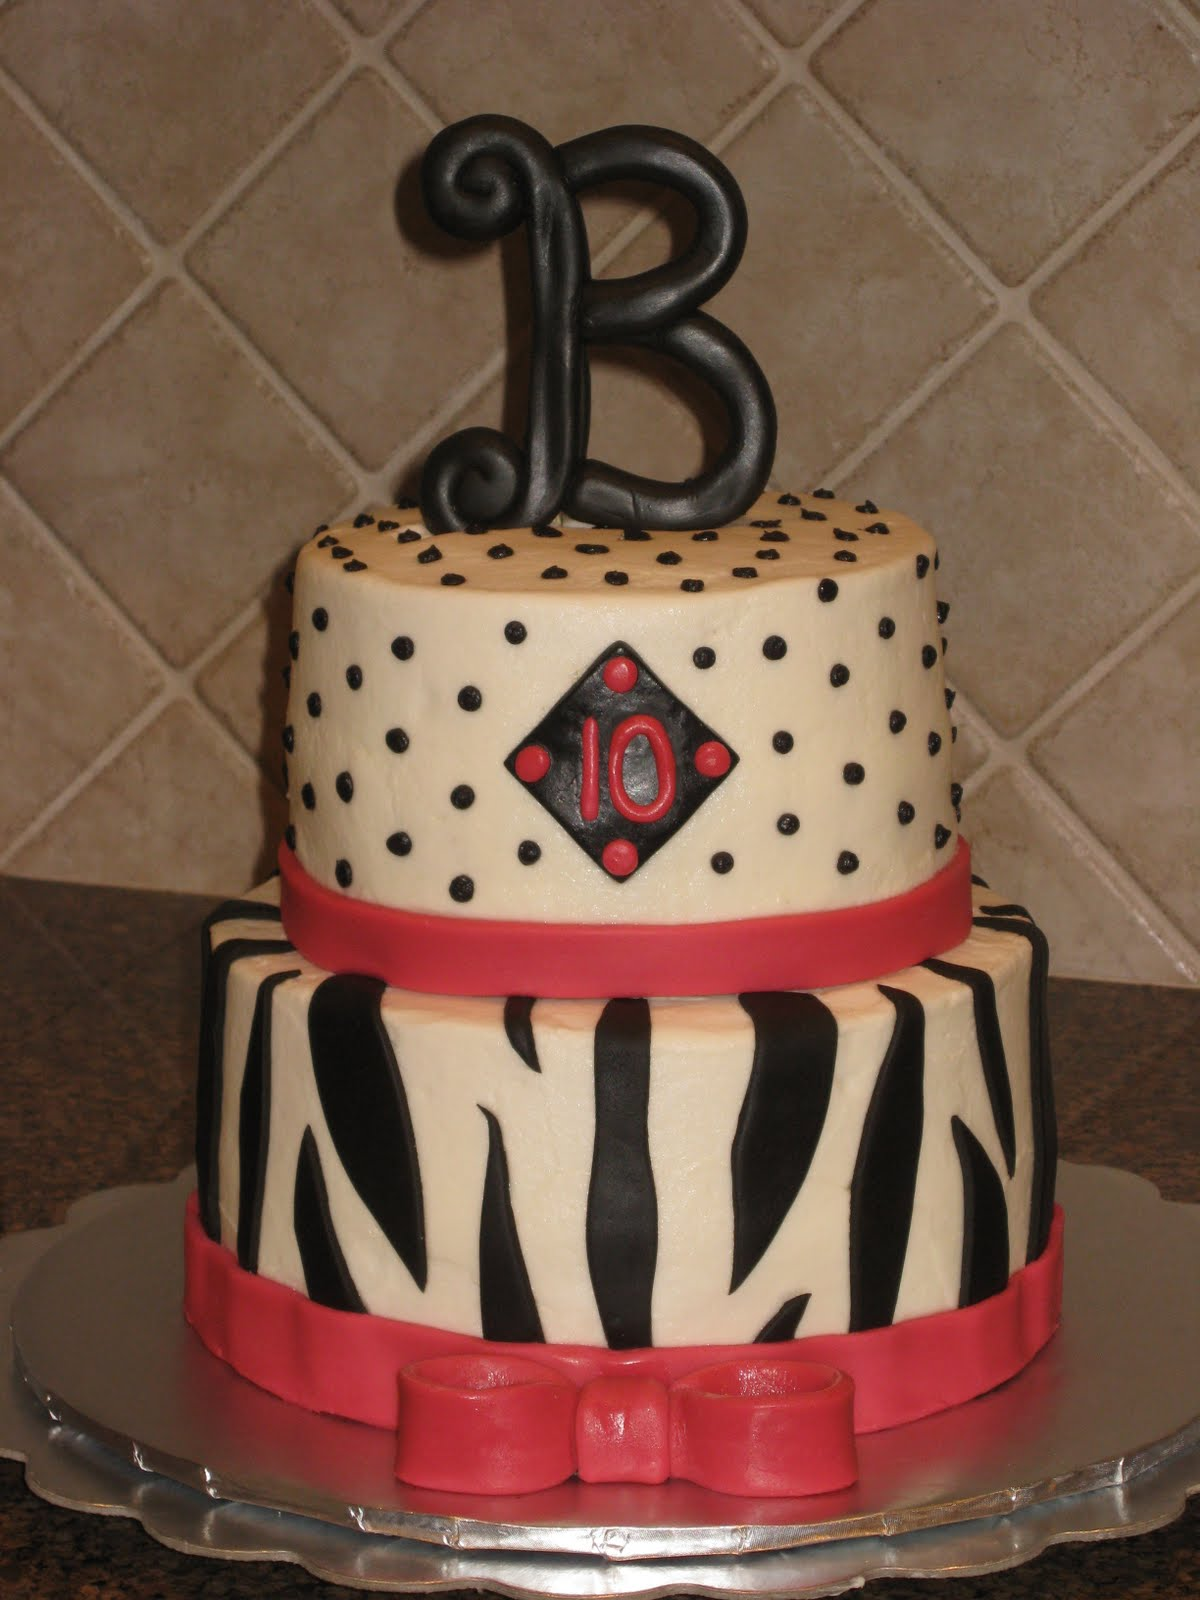 Shannons Creative Cakes 2009